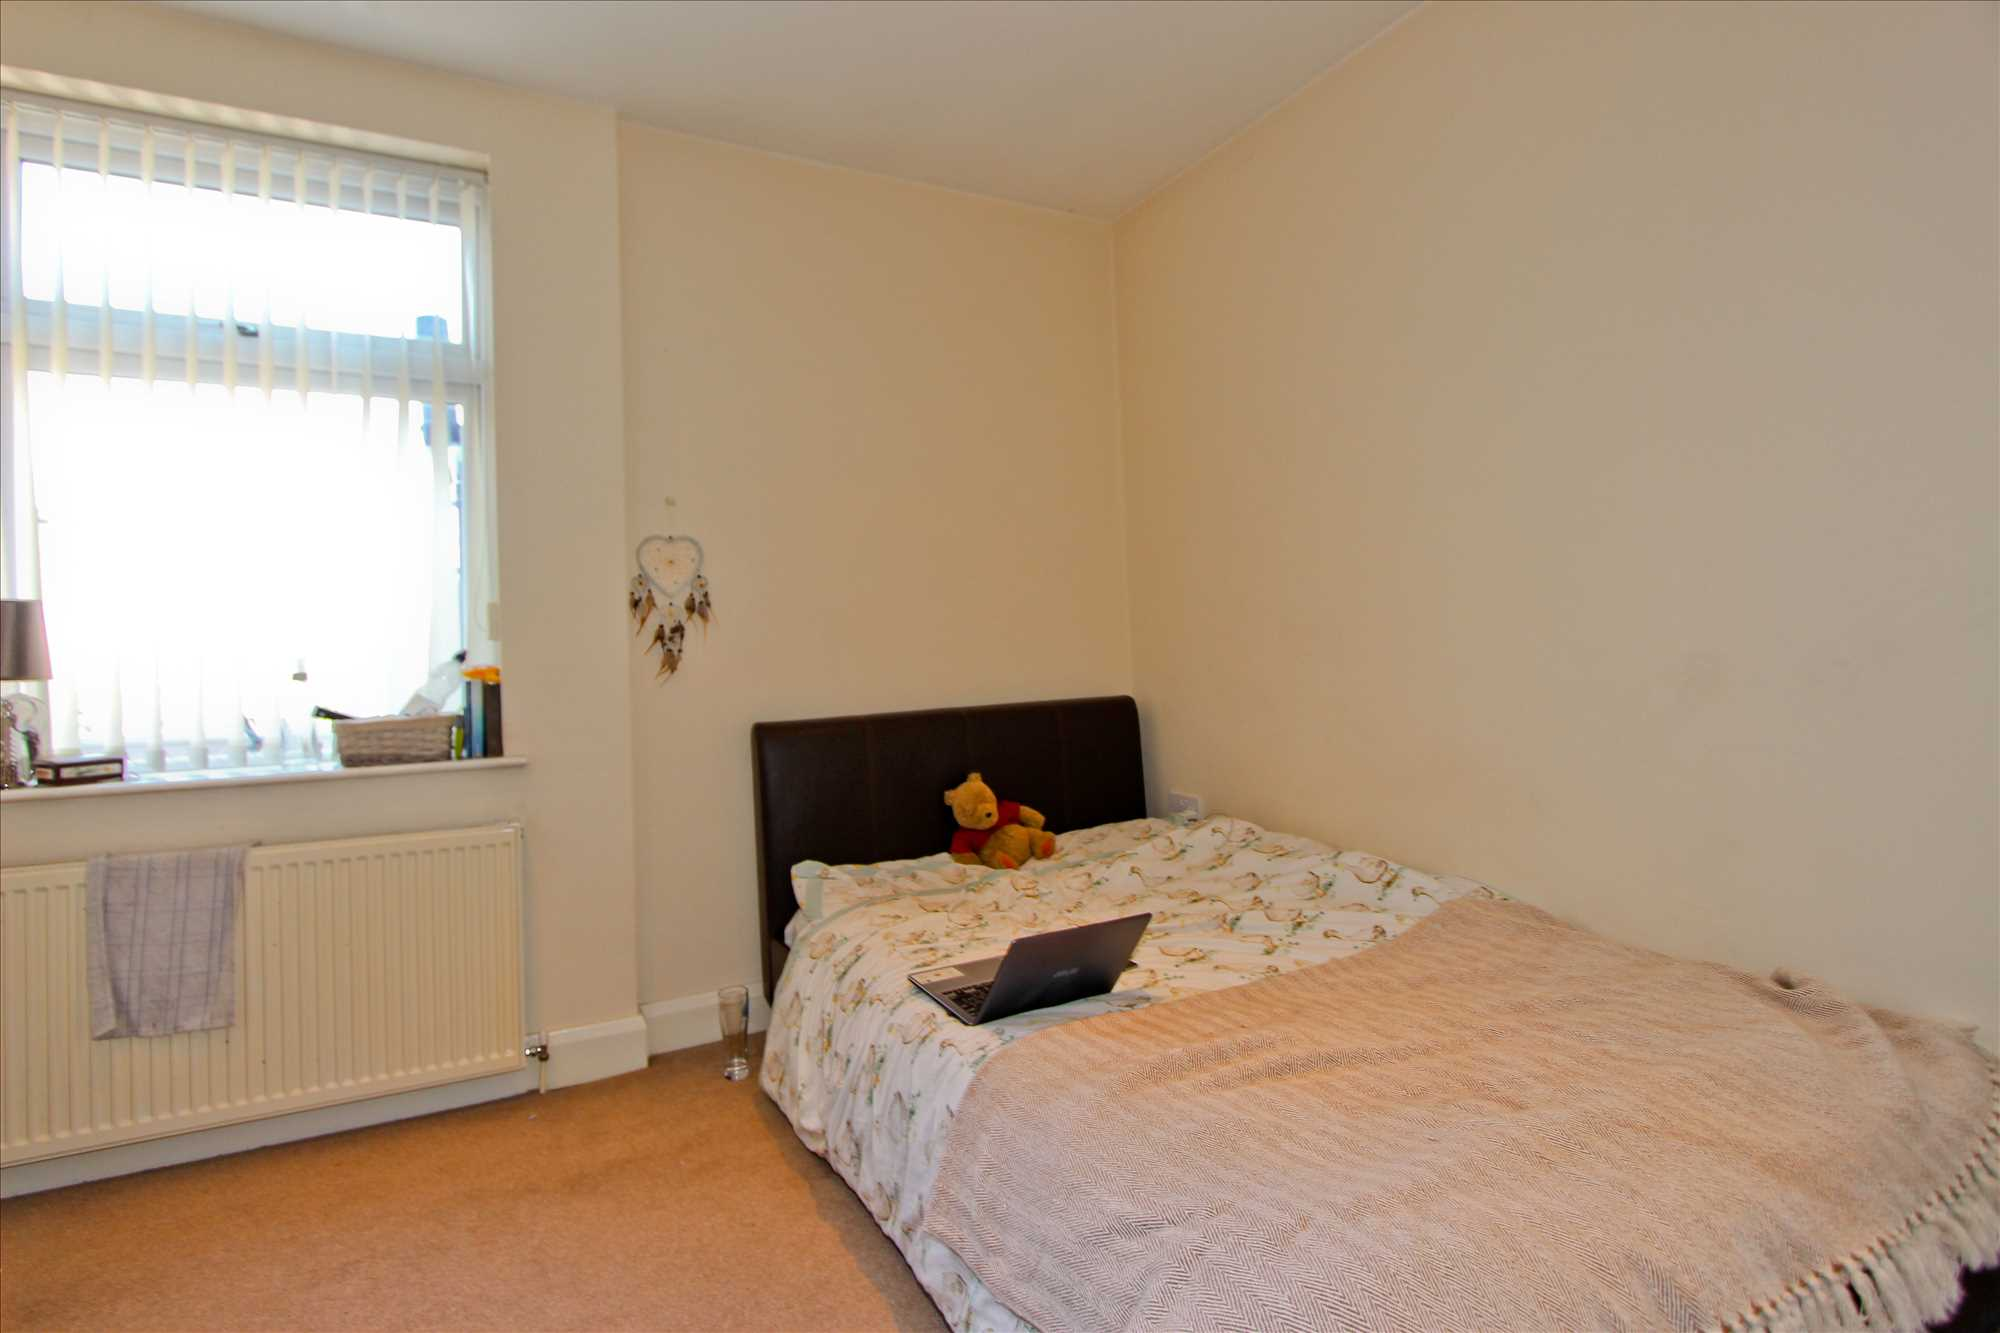 Property Image Bedroom 1: